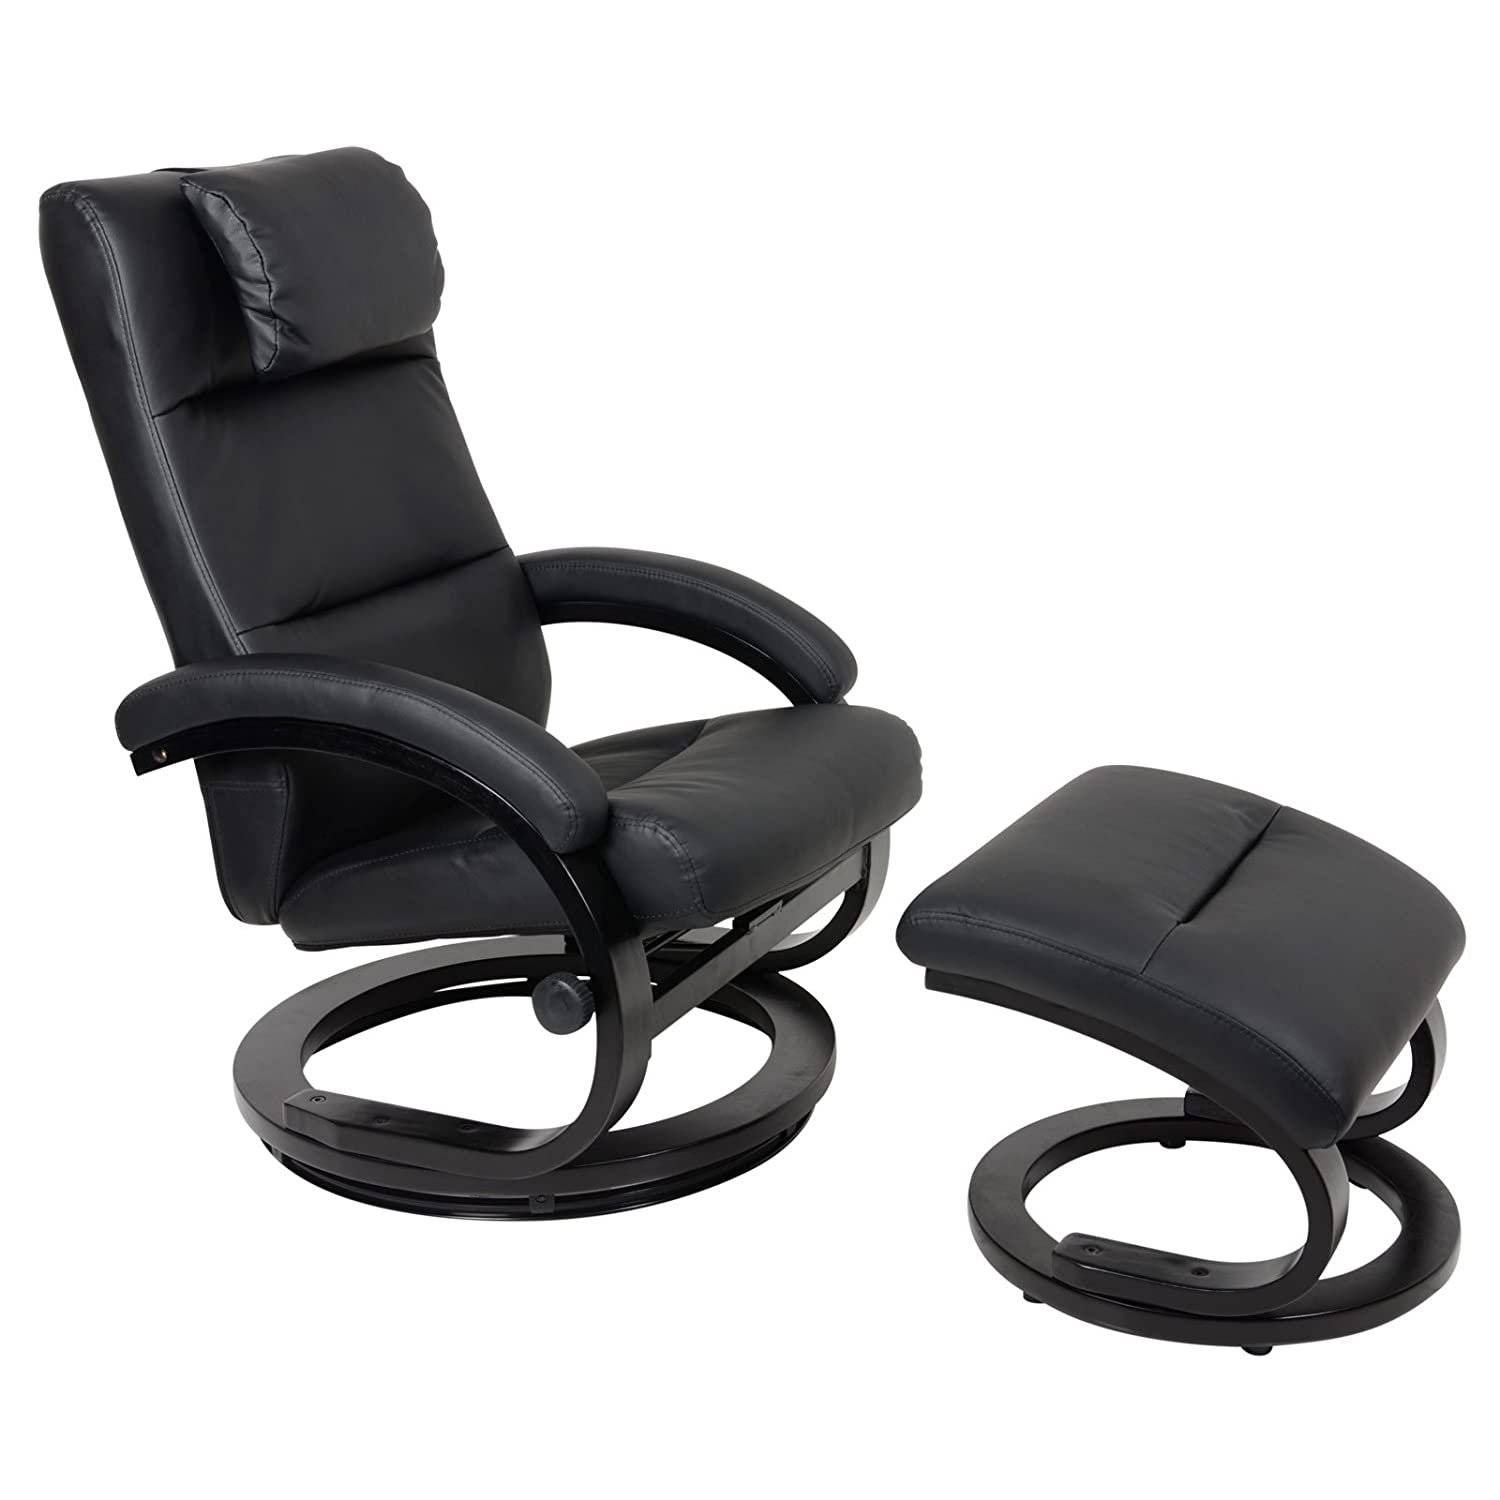 Relaxer Chair Lounger Padded Armchair Recliner Seat With Foot